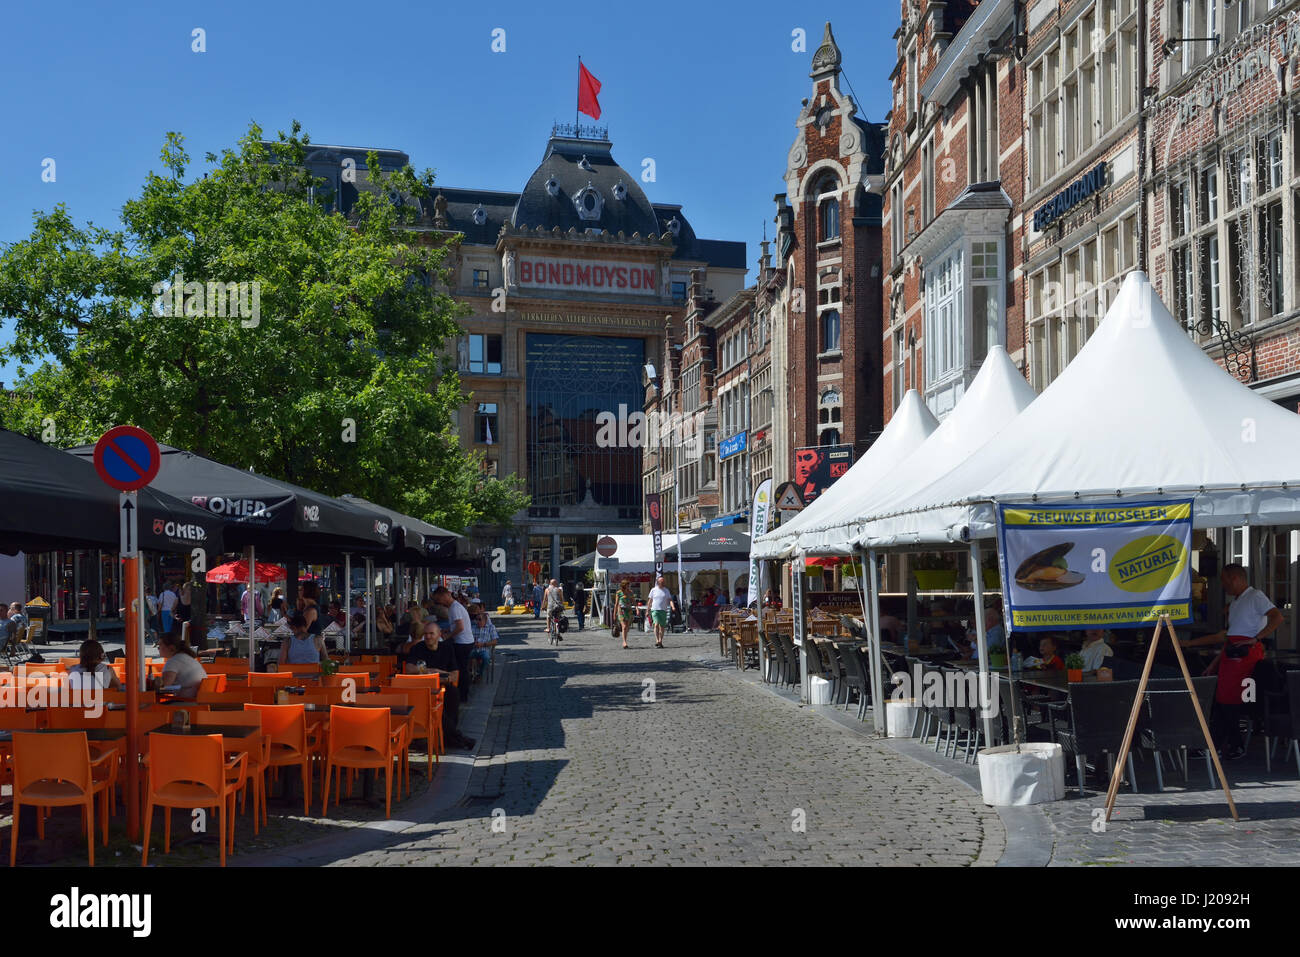 Shopping street in historical part of city during Gentse Feesten in Ghent, Belgium on July 19, 2016 - Stock Image